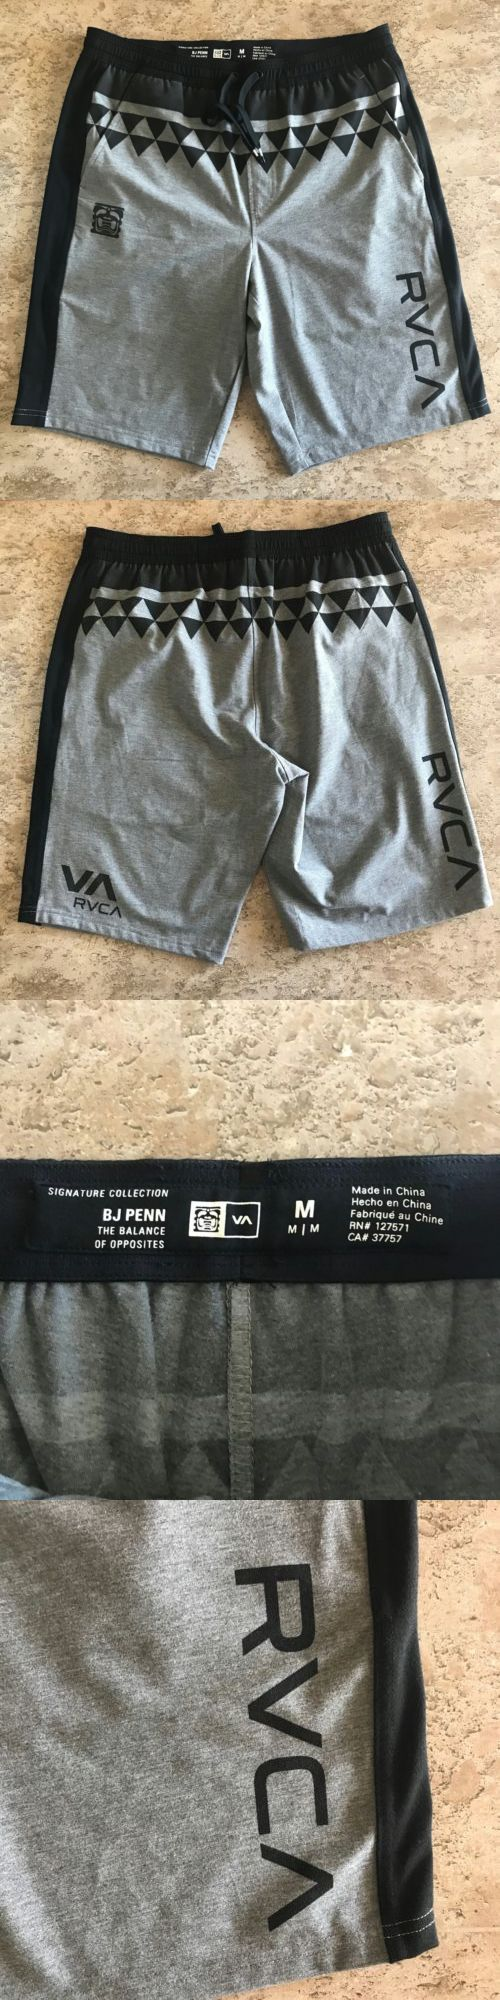 Shorts 73982: Rvca Ufc Mma Shorts Gray Black Med Xl Size New -Bj Penn Tahiti Look -> BUY IT NOW ONLY: $44 on eBay!